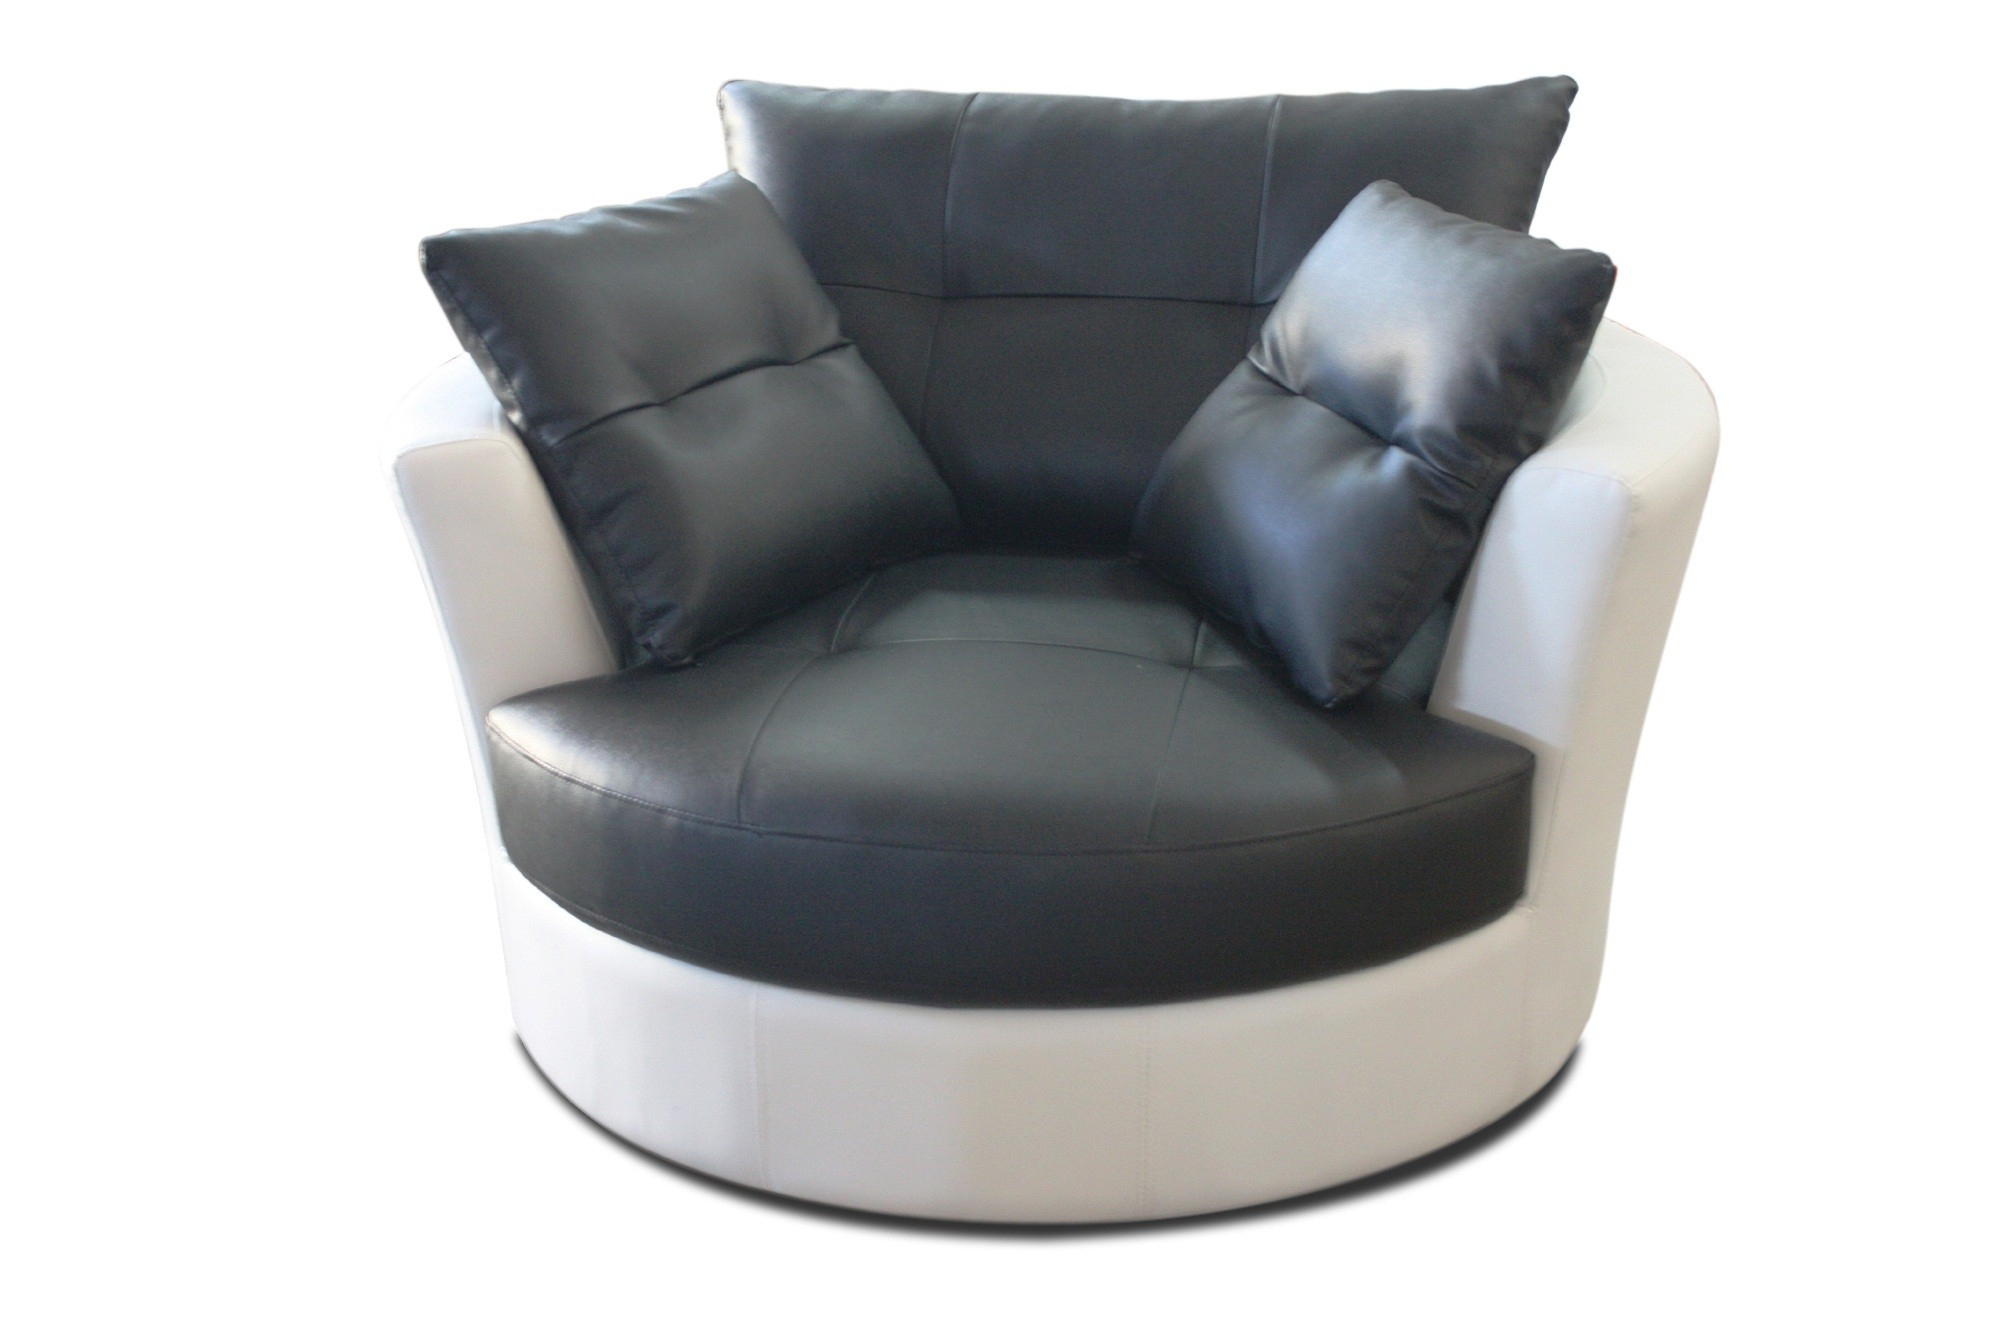 Sofas With Swivel Chair Throughout Favorite Fresh Swivel Sofa Chair 55 For Sofas And Couches Ideas With Swivel (View 11 of 20)